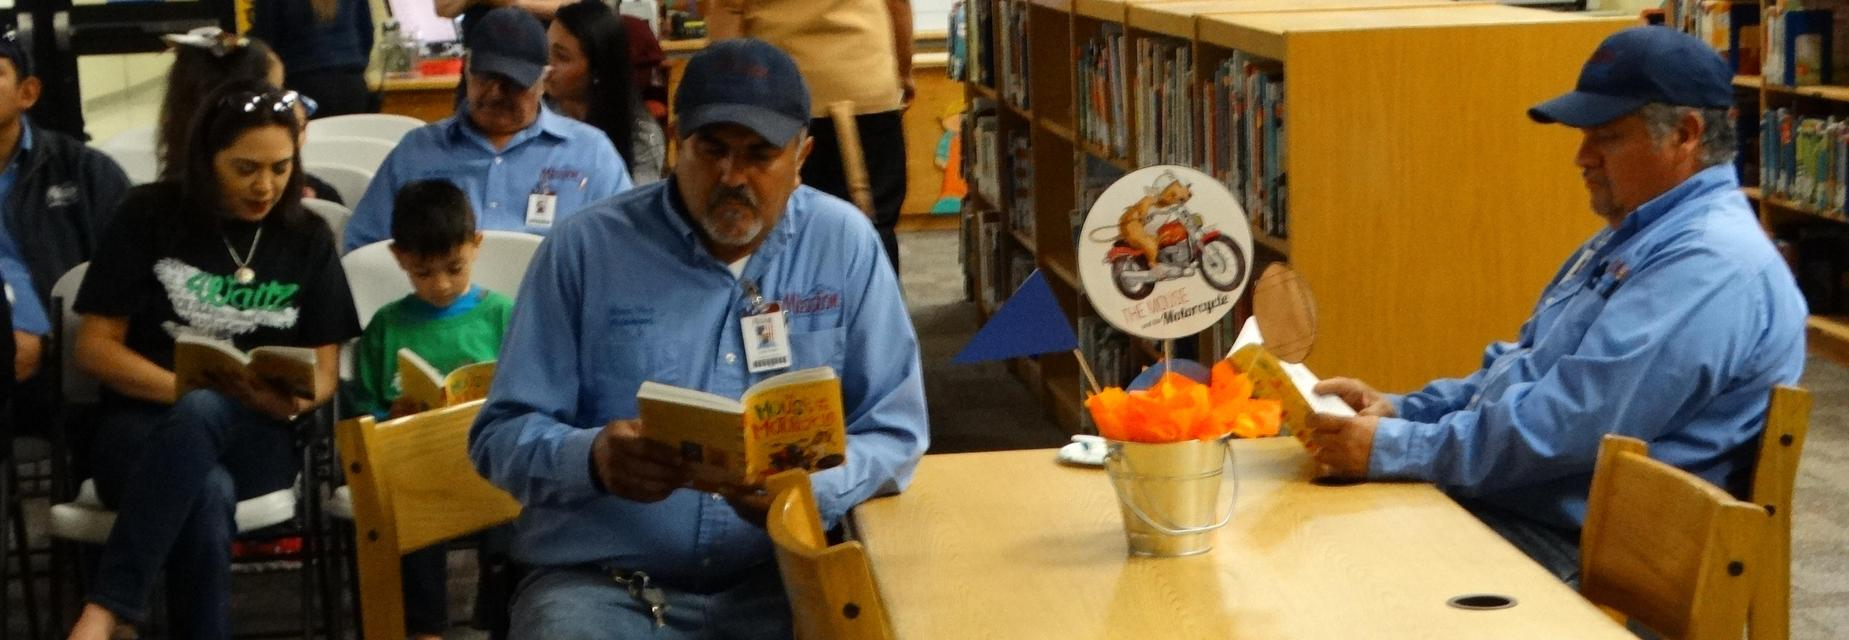 Texas Reads One Book at Waitz